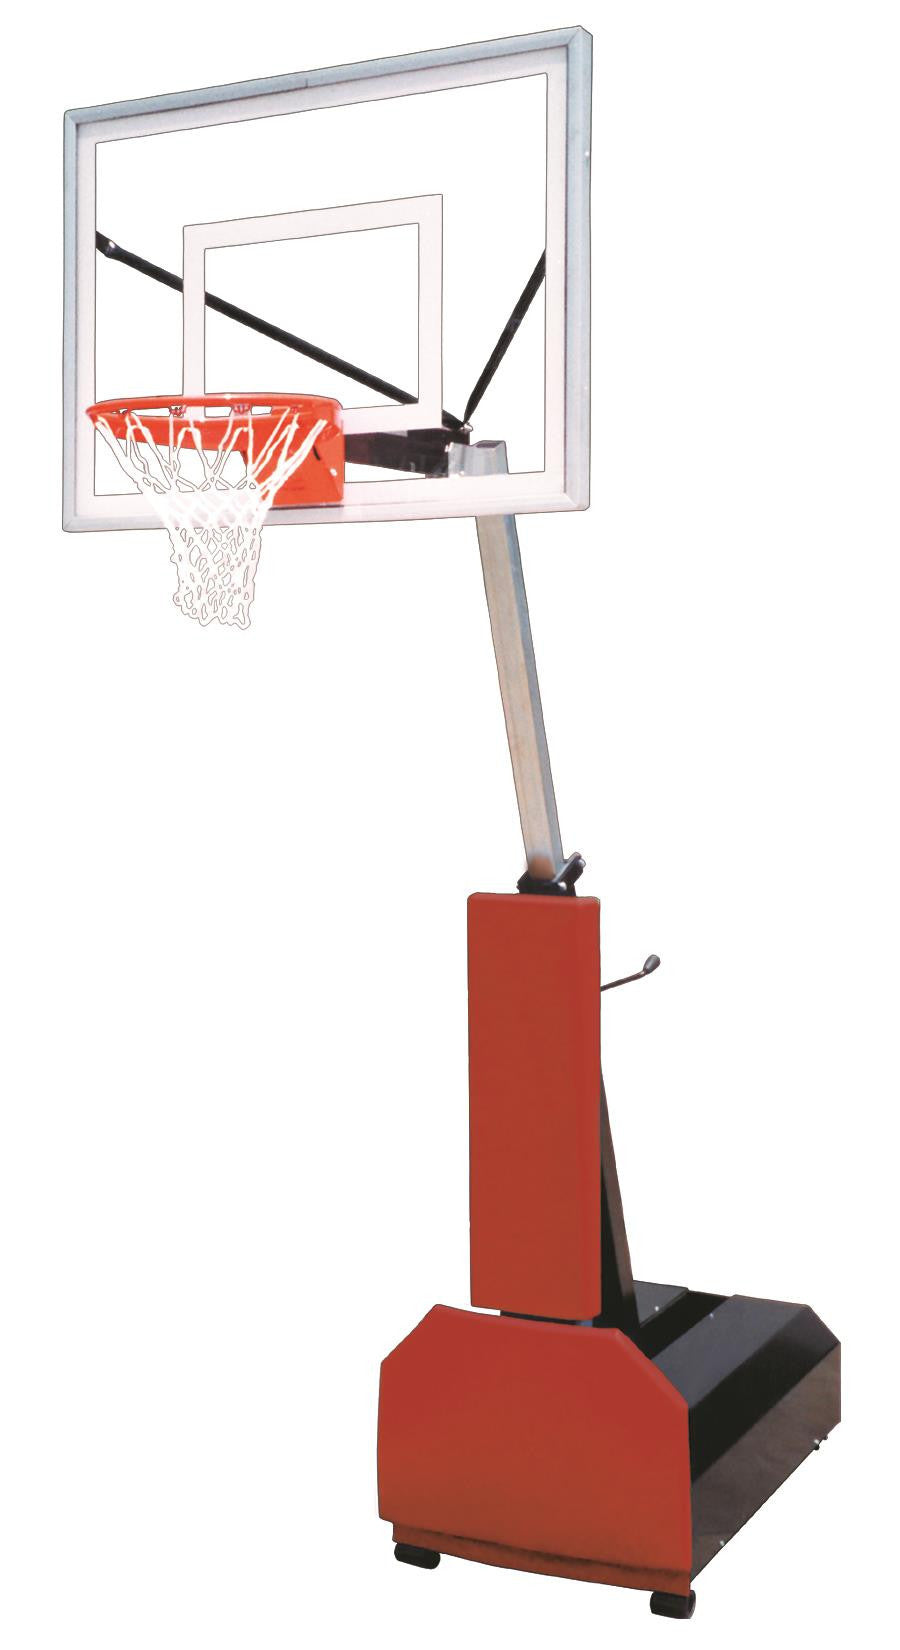 First Team Fury III Adjustable Portable Basketball Hoop 54 inch Acrylic